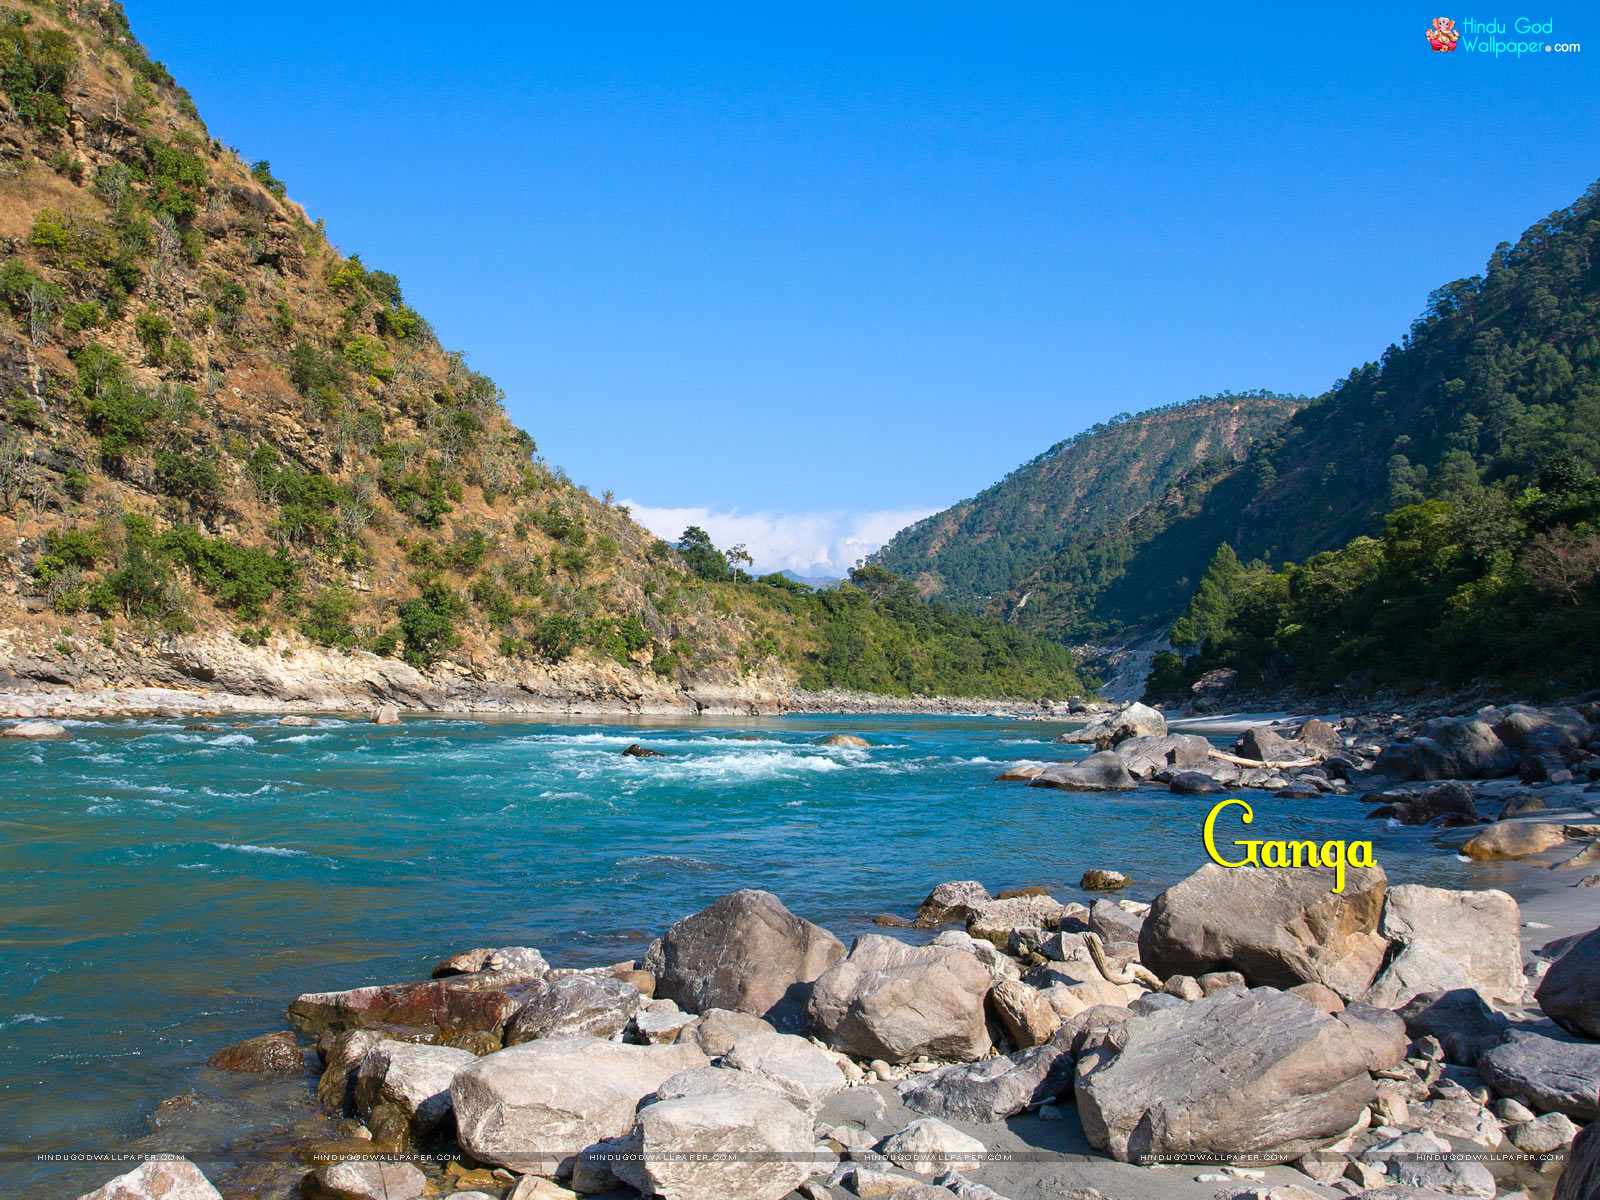 river ganga Get latest & exclusive ganga river news updates & stories explore photos & videos on ganga river also get news from.